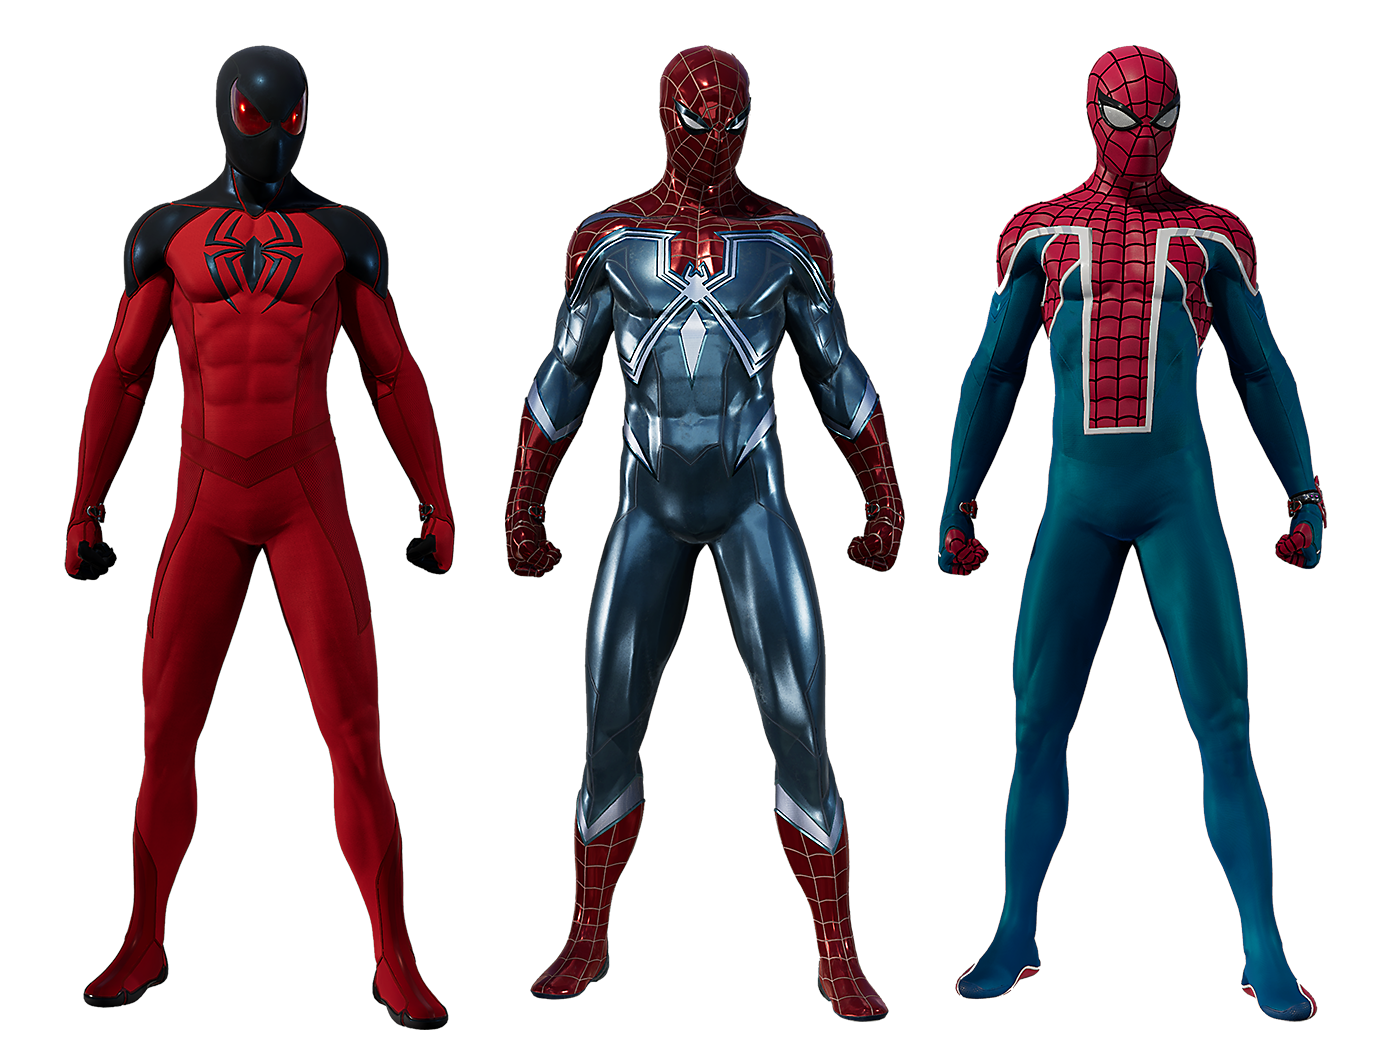 Marvel's Spider-Man - The Heist Suits